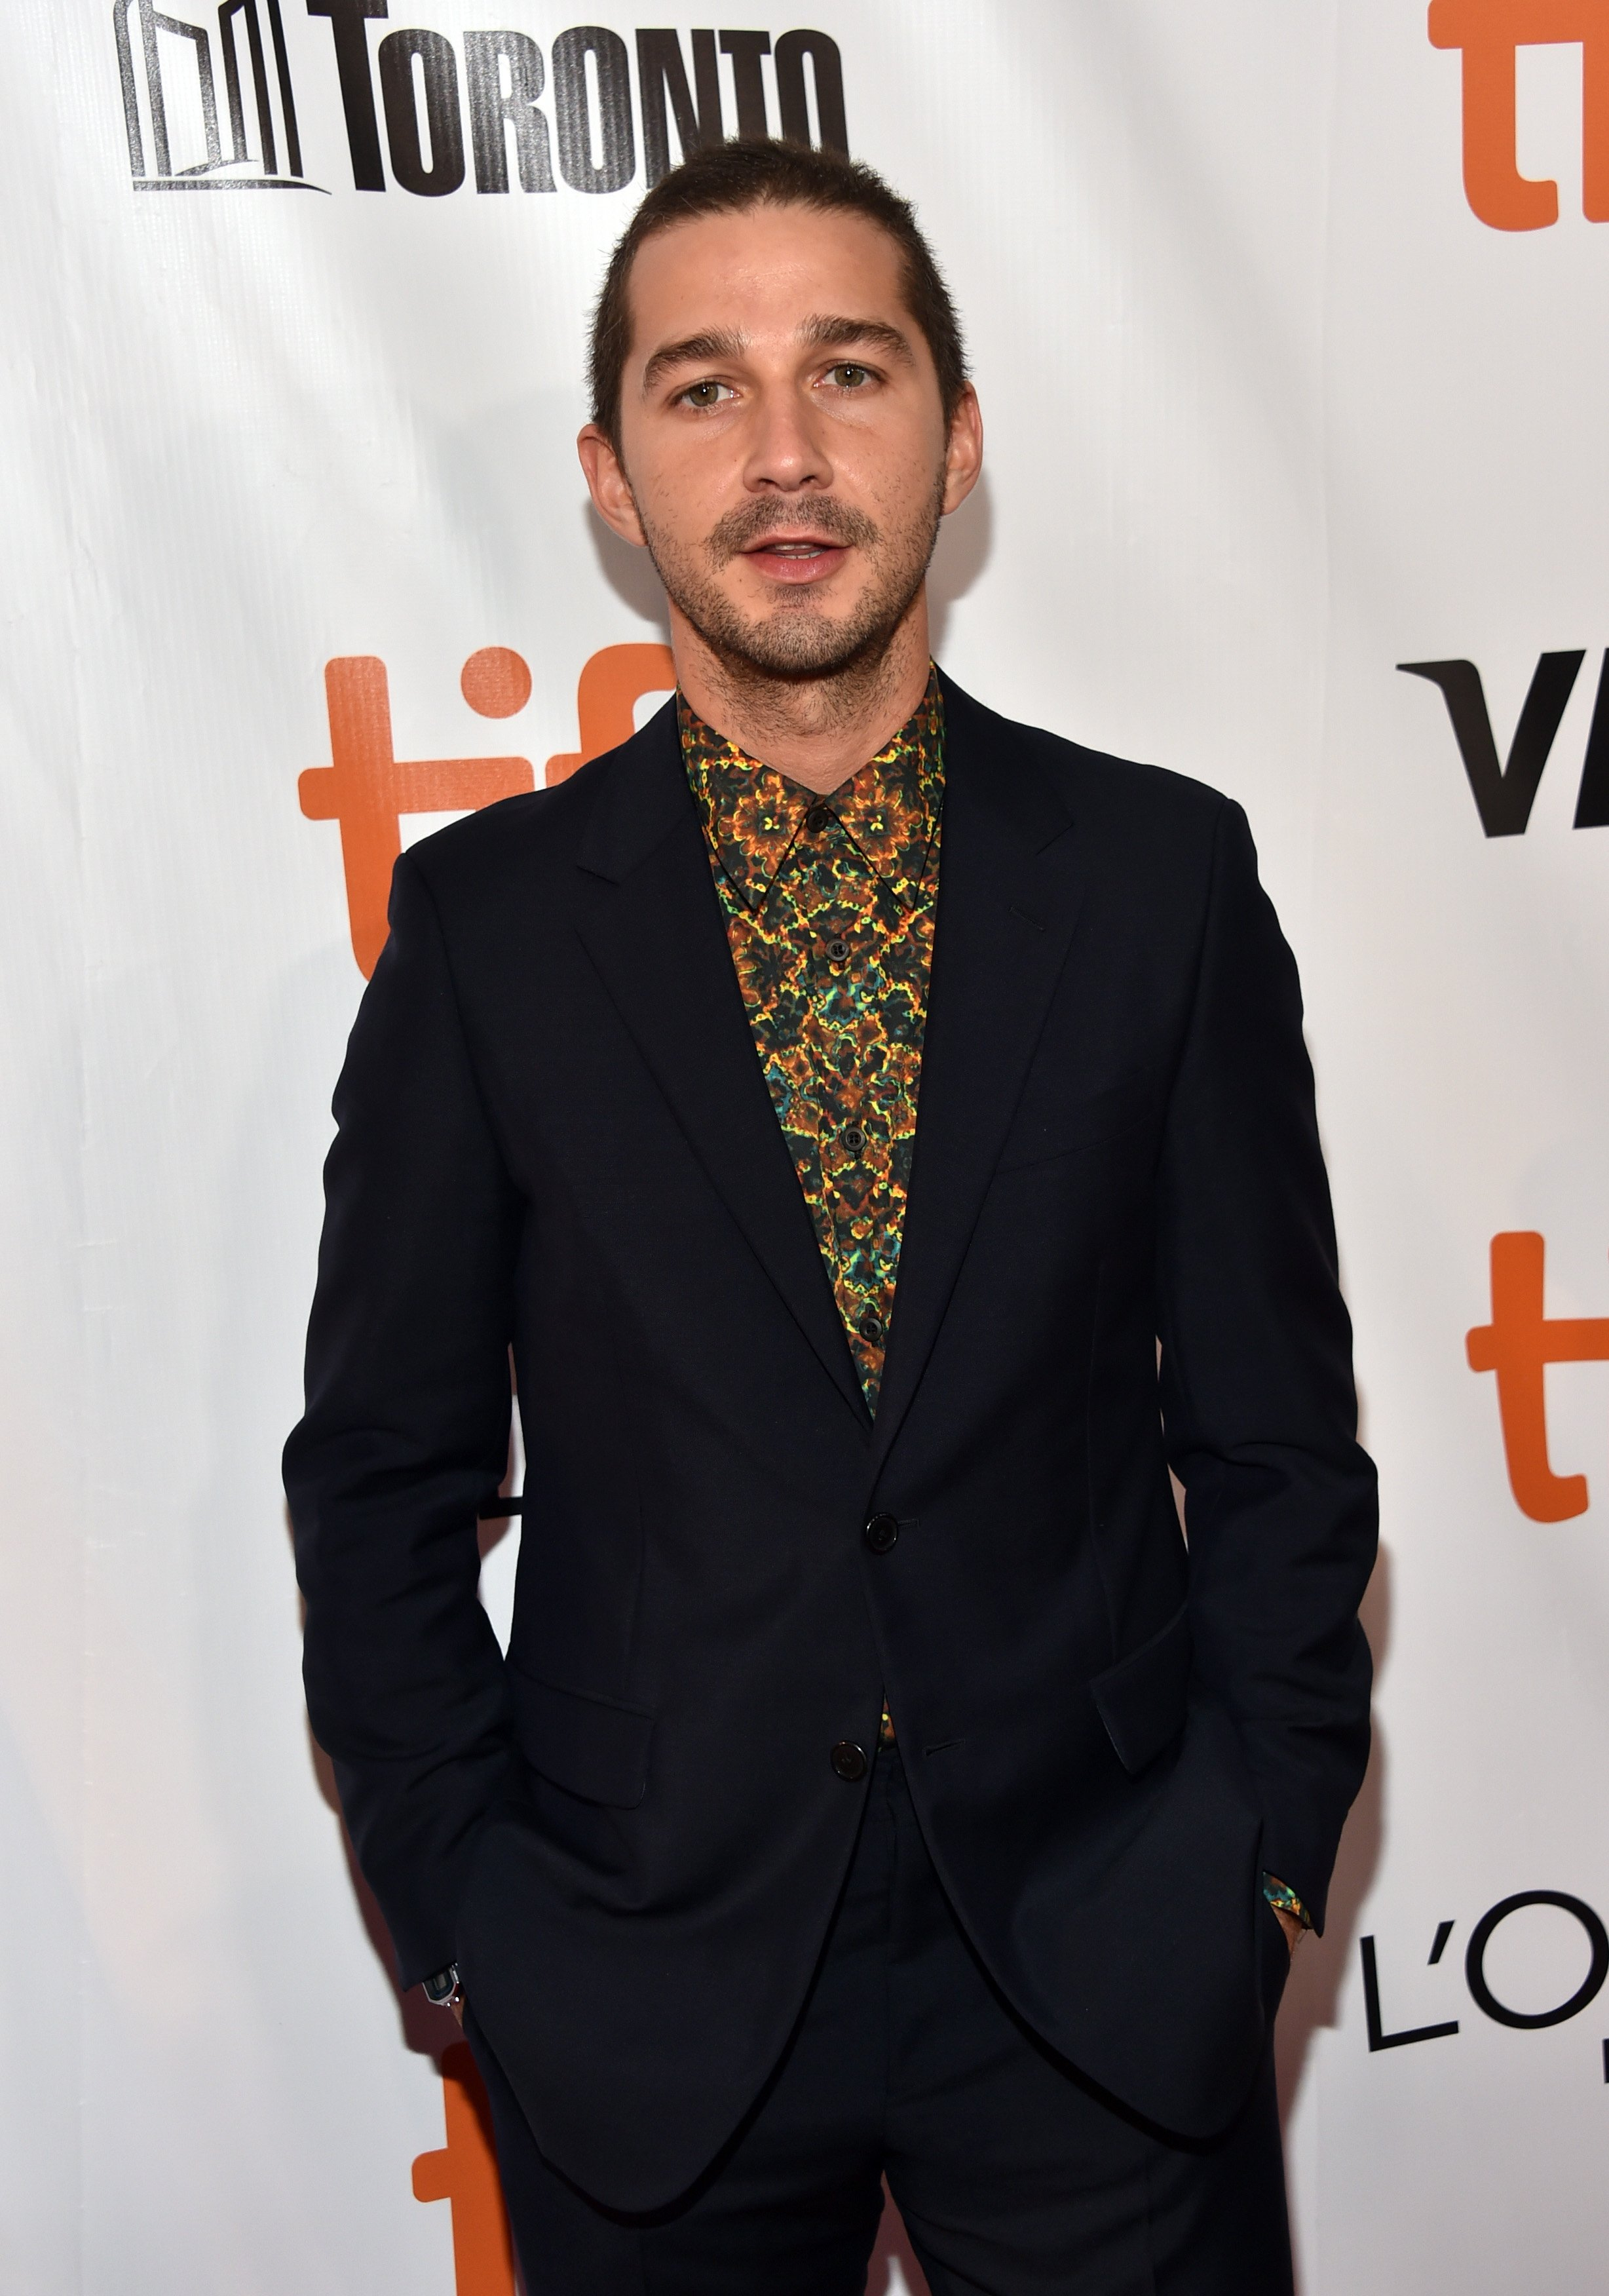 Shia LaBeouf at the 2017 Toronto International Film Festival. | Photo: Getty Images